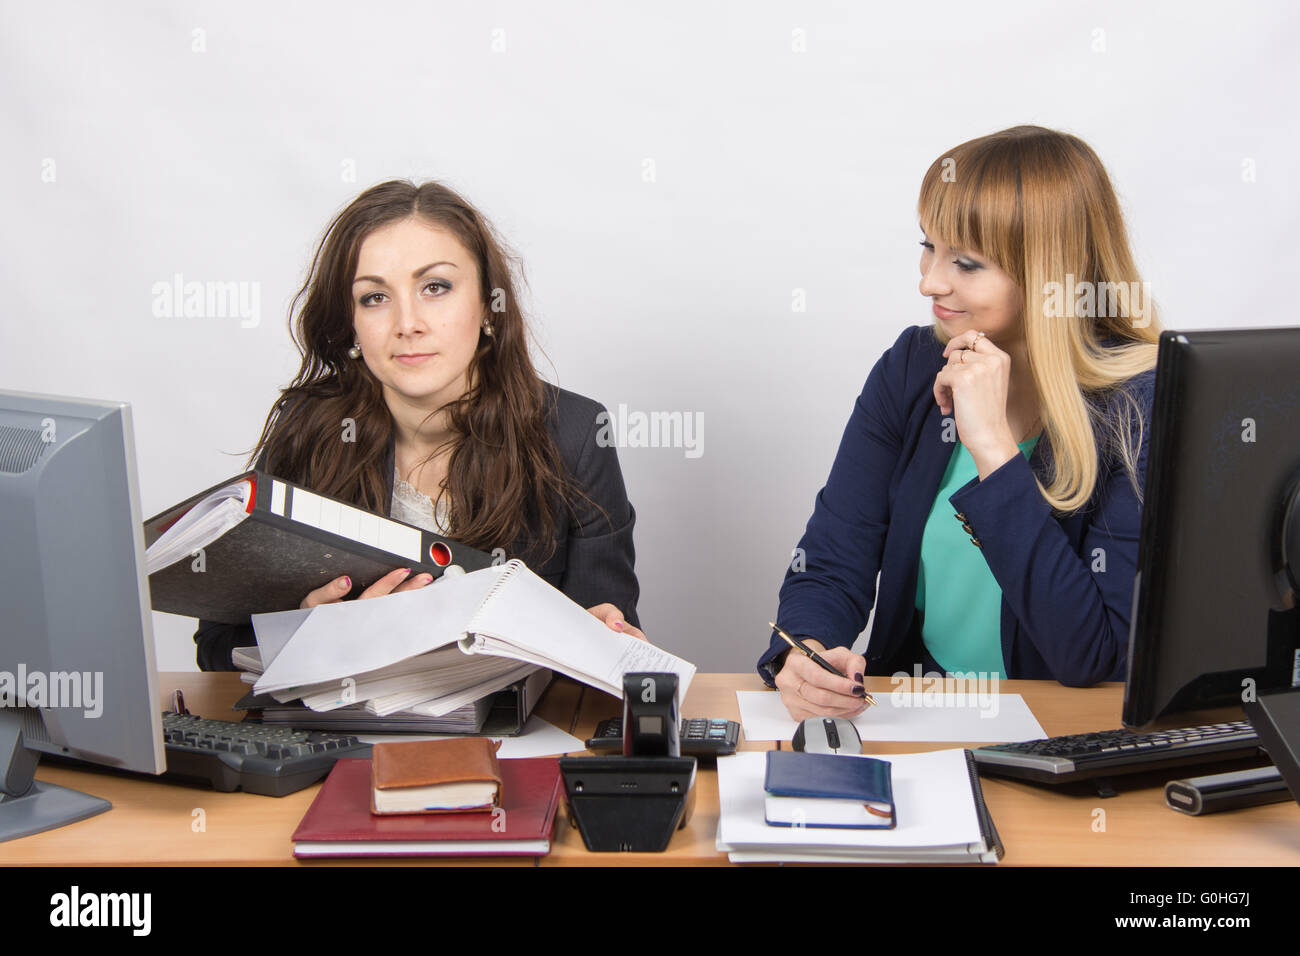 The situation in the office - one employee inundated with work and looking at the frame, the other does nothing, - Stock Image